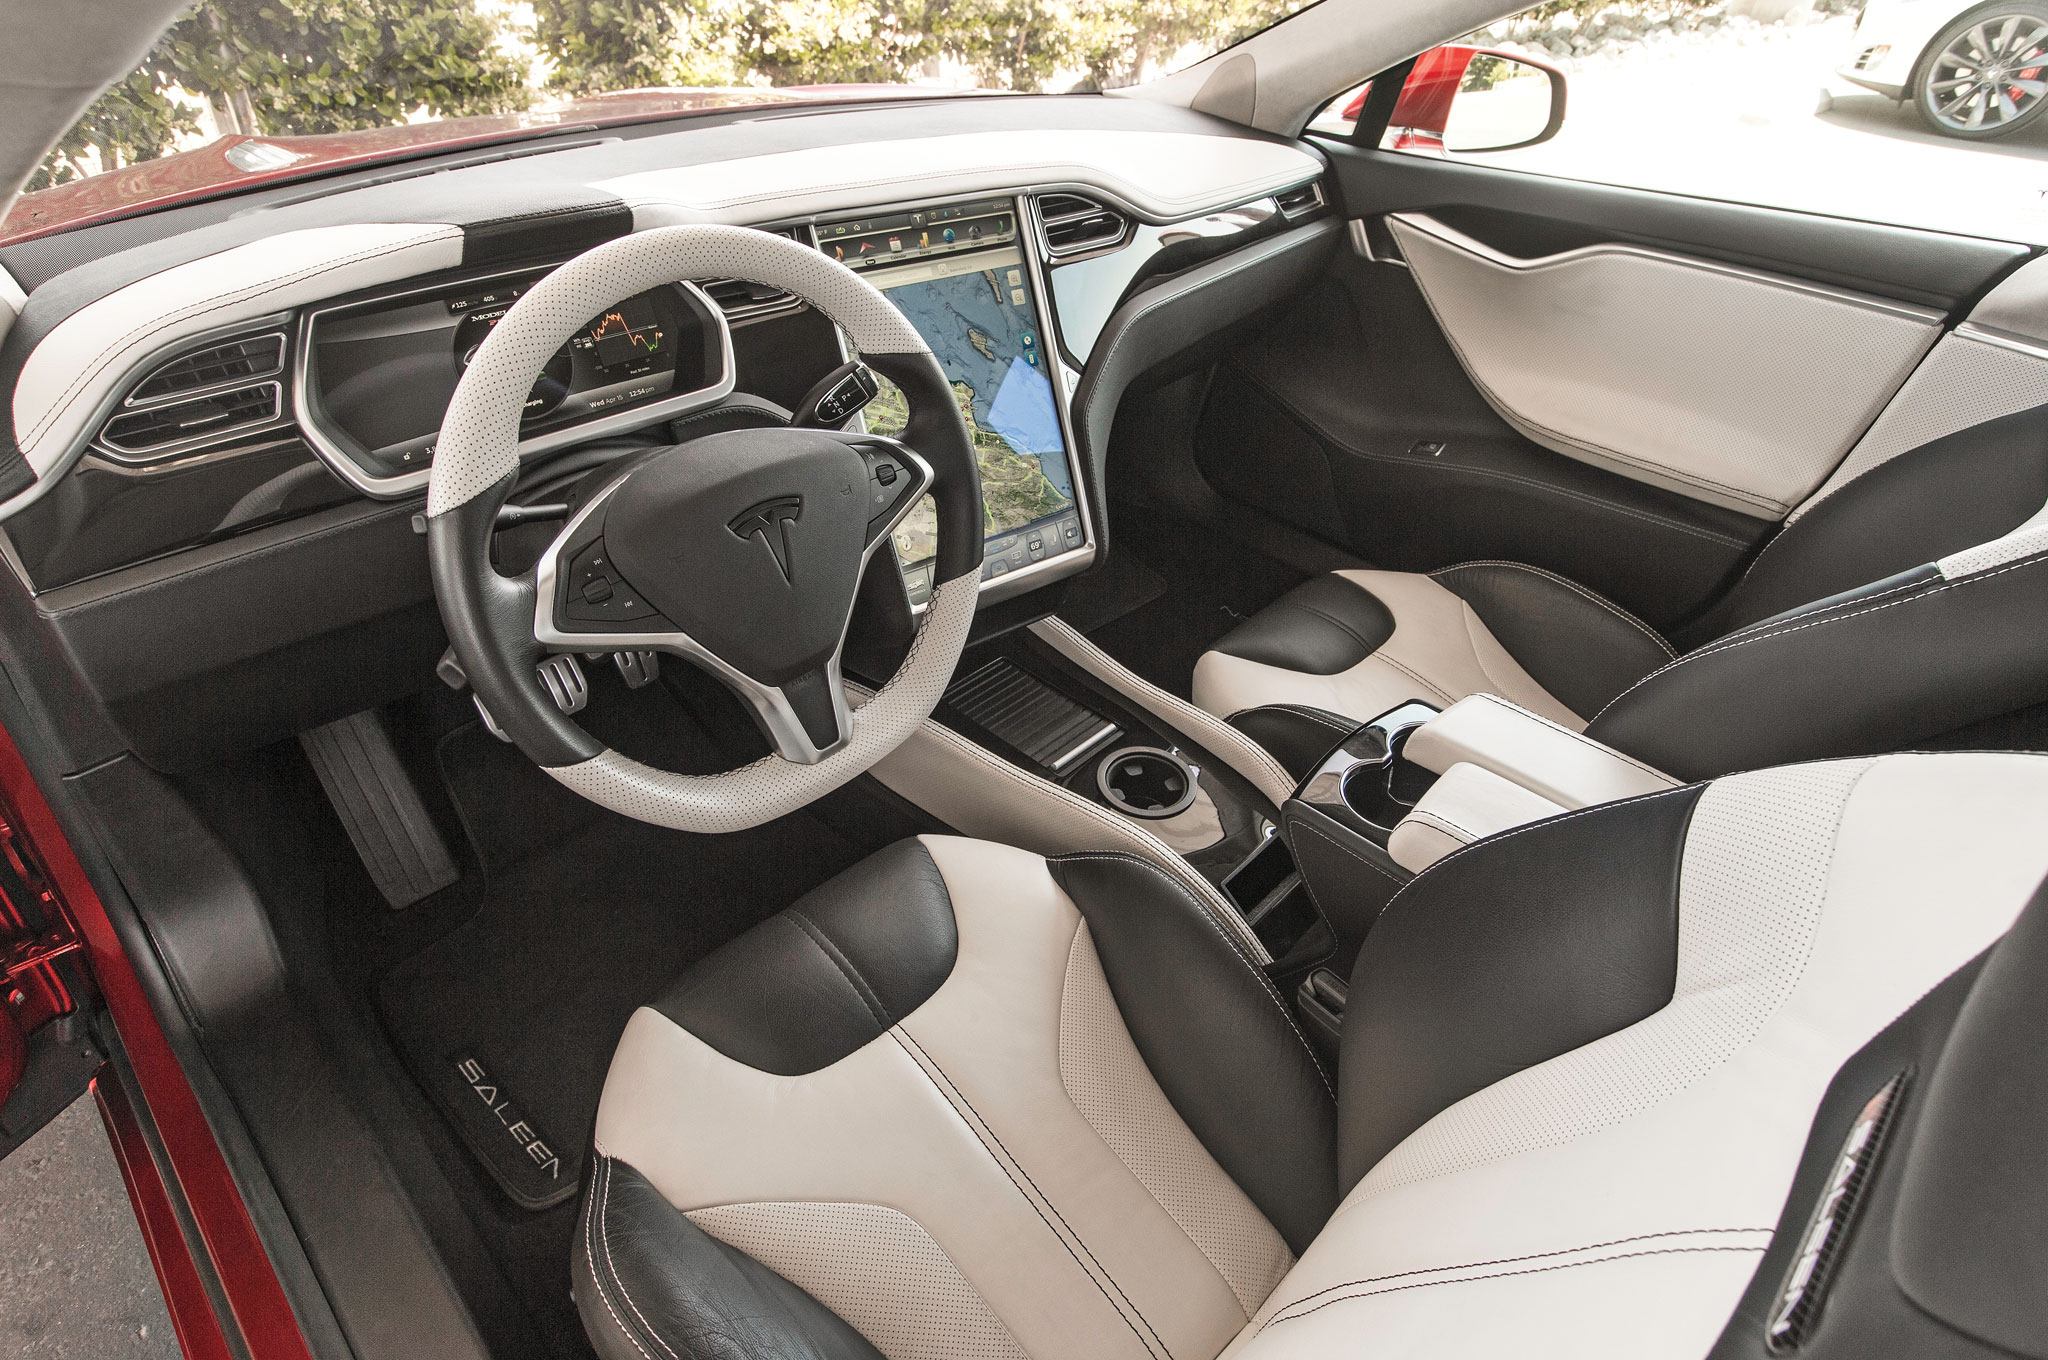 The GTX's slick cabin comes with a cupholder–an item missing in the first-gen Model S. Yes!